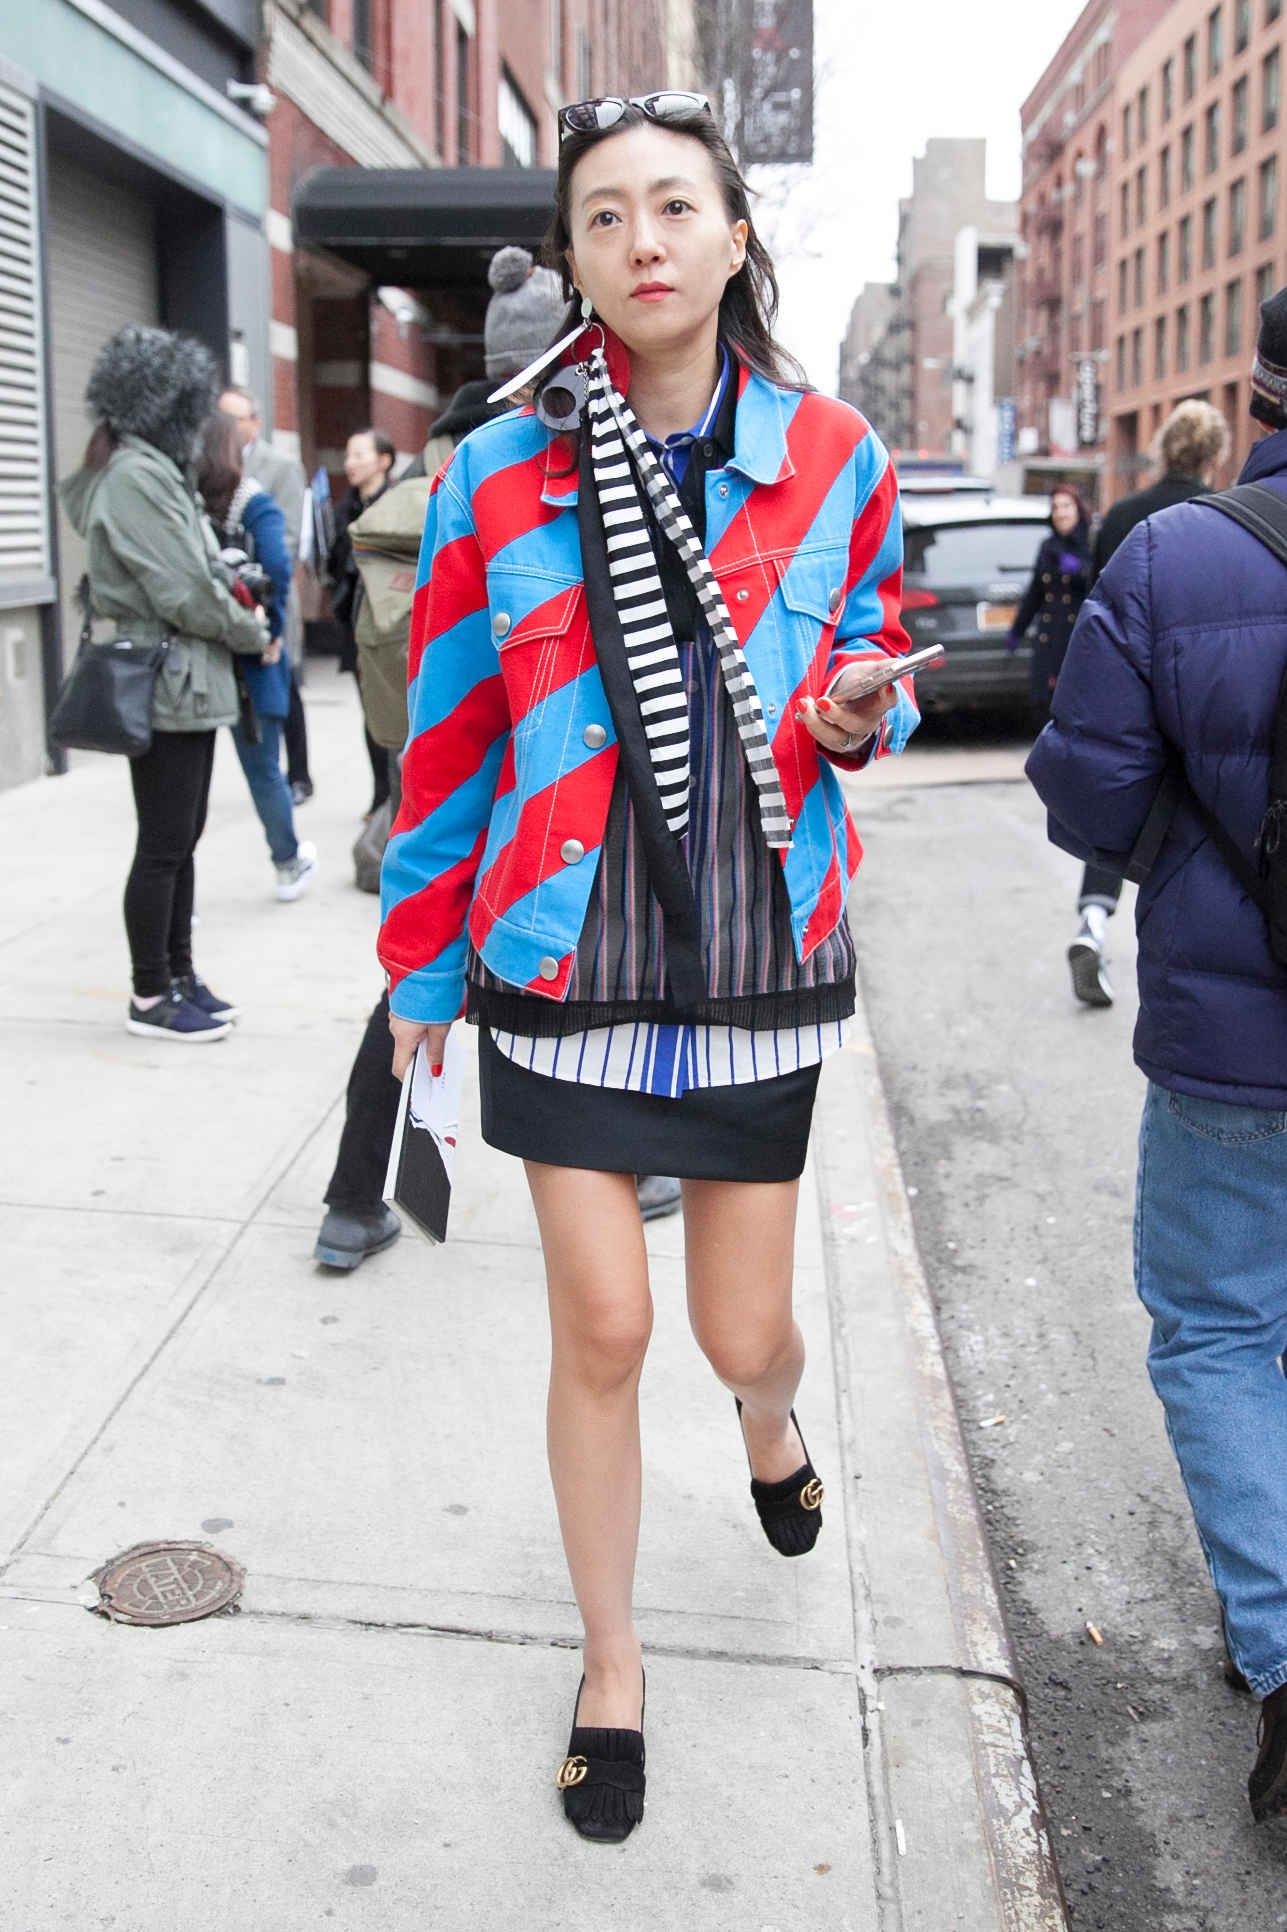 Statement Bomber Jackets Stood Out on Day 7 of NYFW - Fashionista